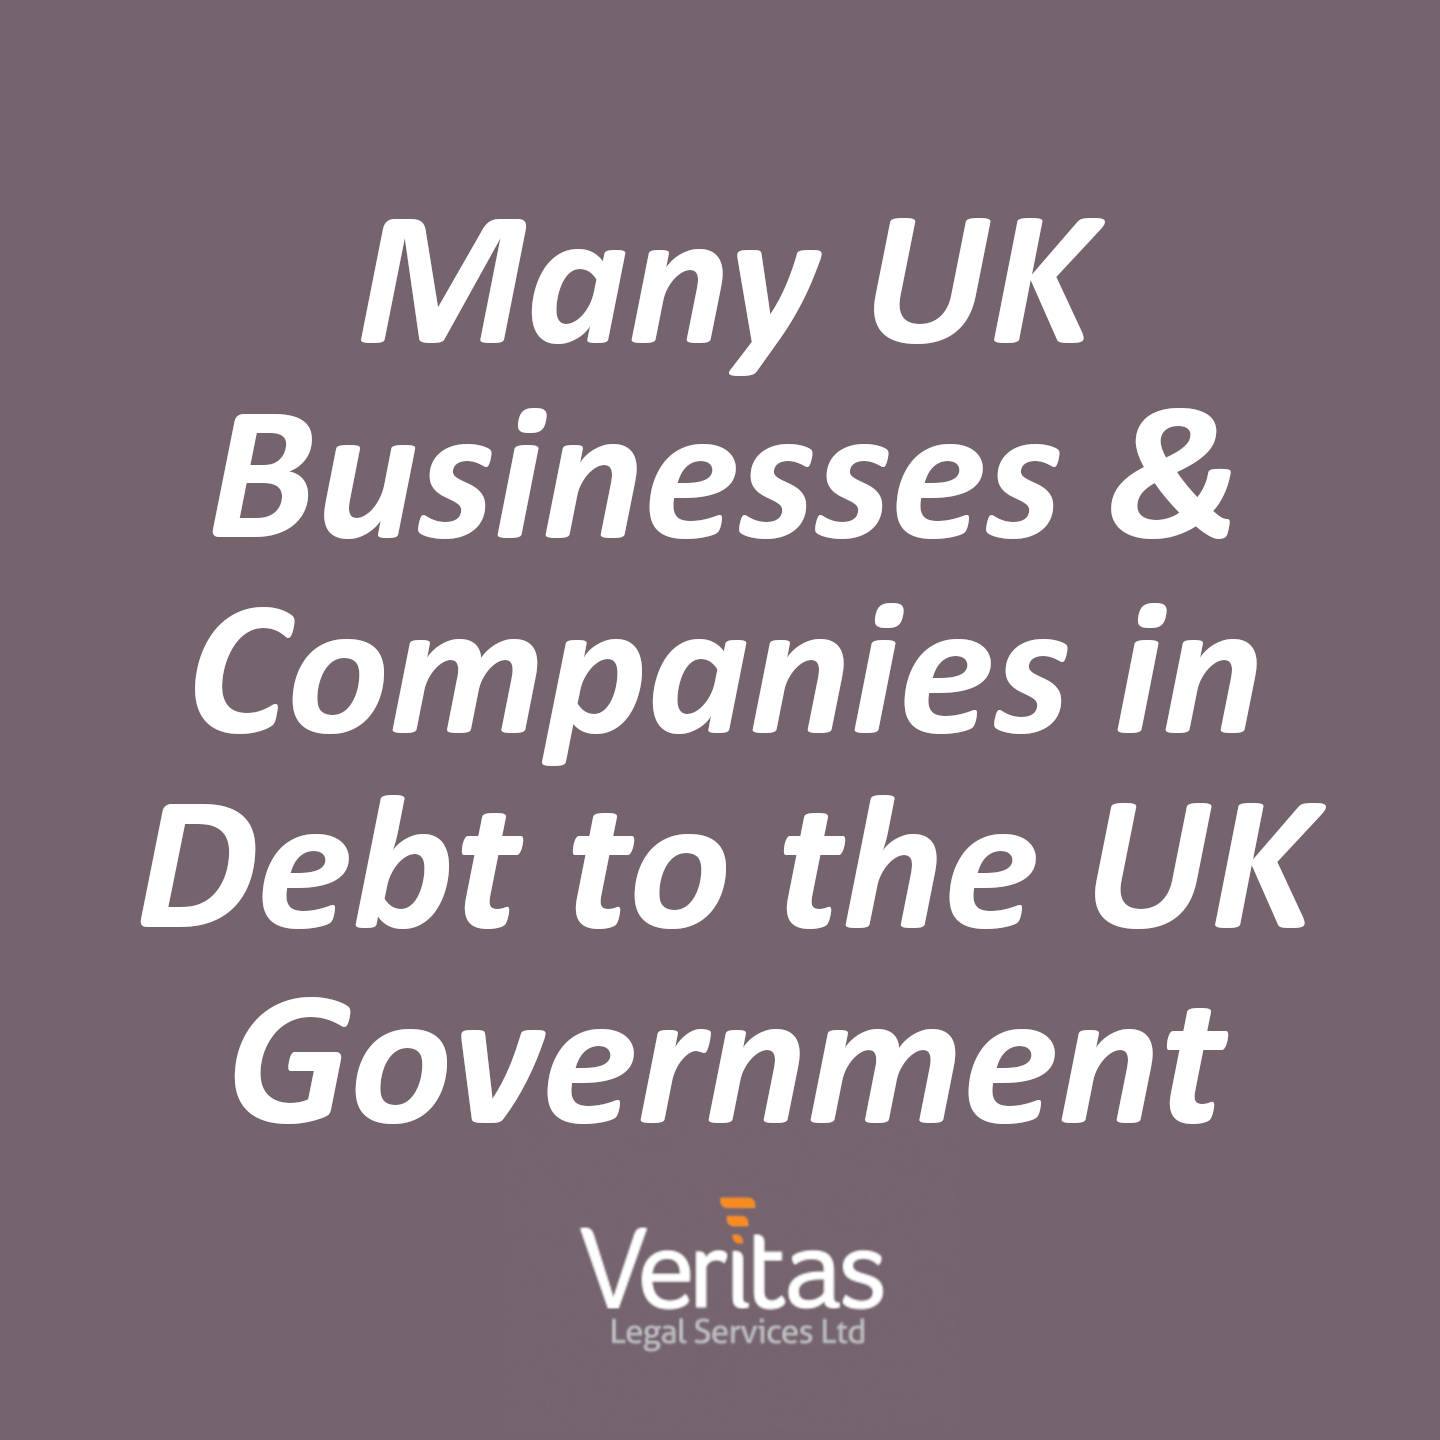 Many UK Businesses & Companies in Debt to the UK Government